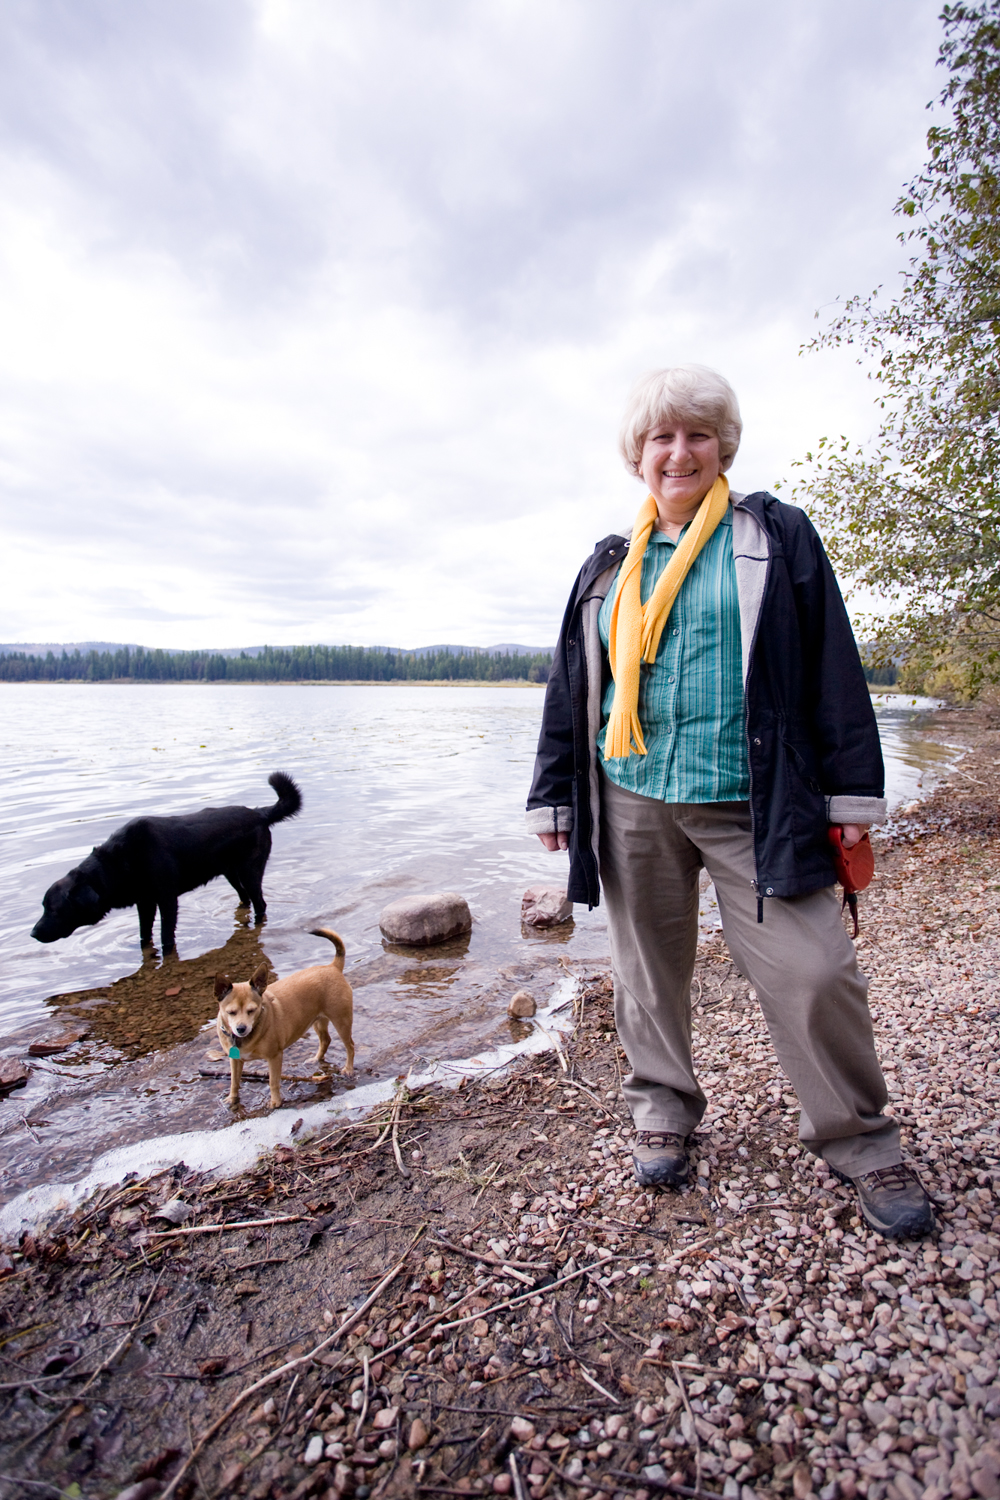 """As part of her daily routine, Love takes her chihuahua mix, Ginger, for a walk near the lake. The neighbor's dog, Ky, often joins them. """"I spend my day in nature,"""" Love says. She uses her walks as part of the creative process, and takes time to observe any wildlife she sees on the way."""